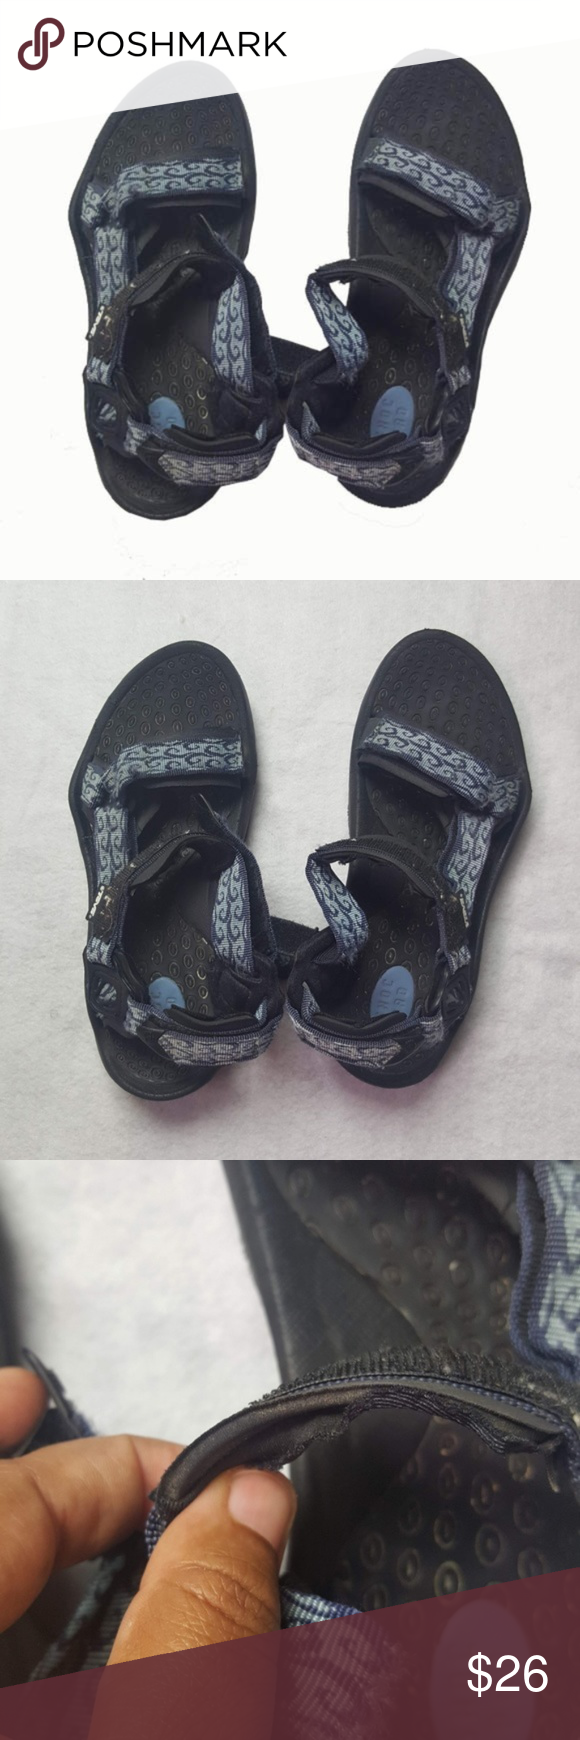 low priced cced2 d2a76 Comfortable TEVA Sandal TEVA SN 6800 - Well-worn condition ...